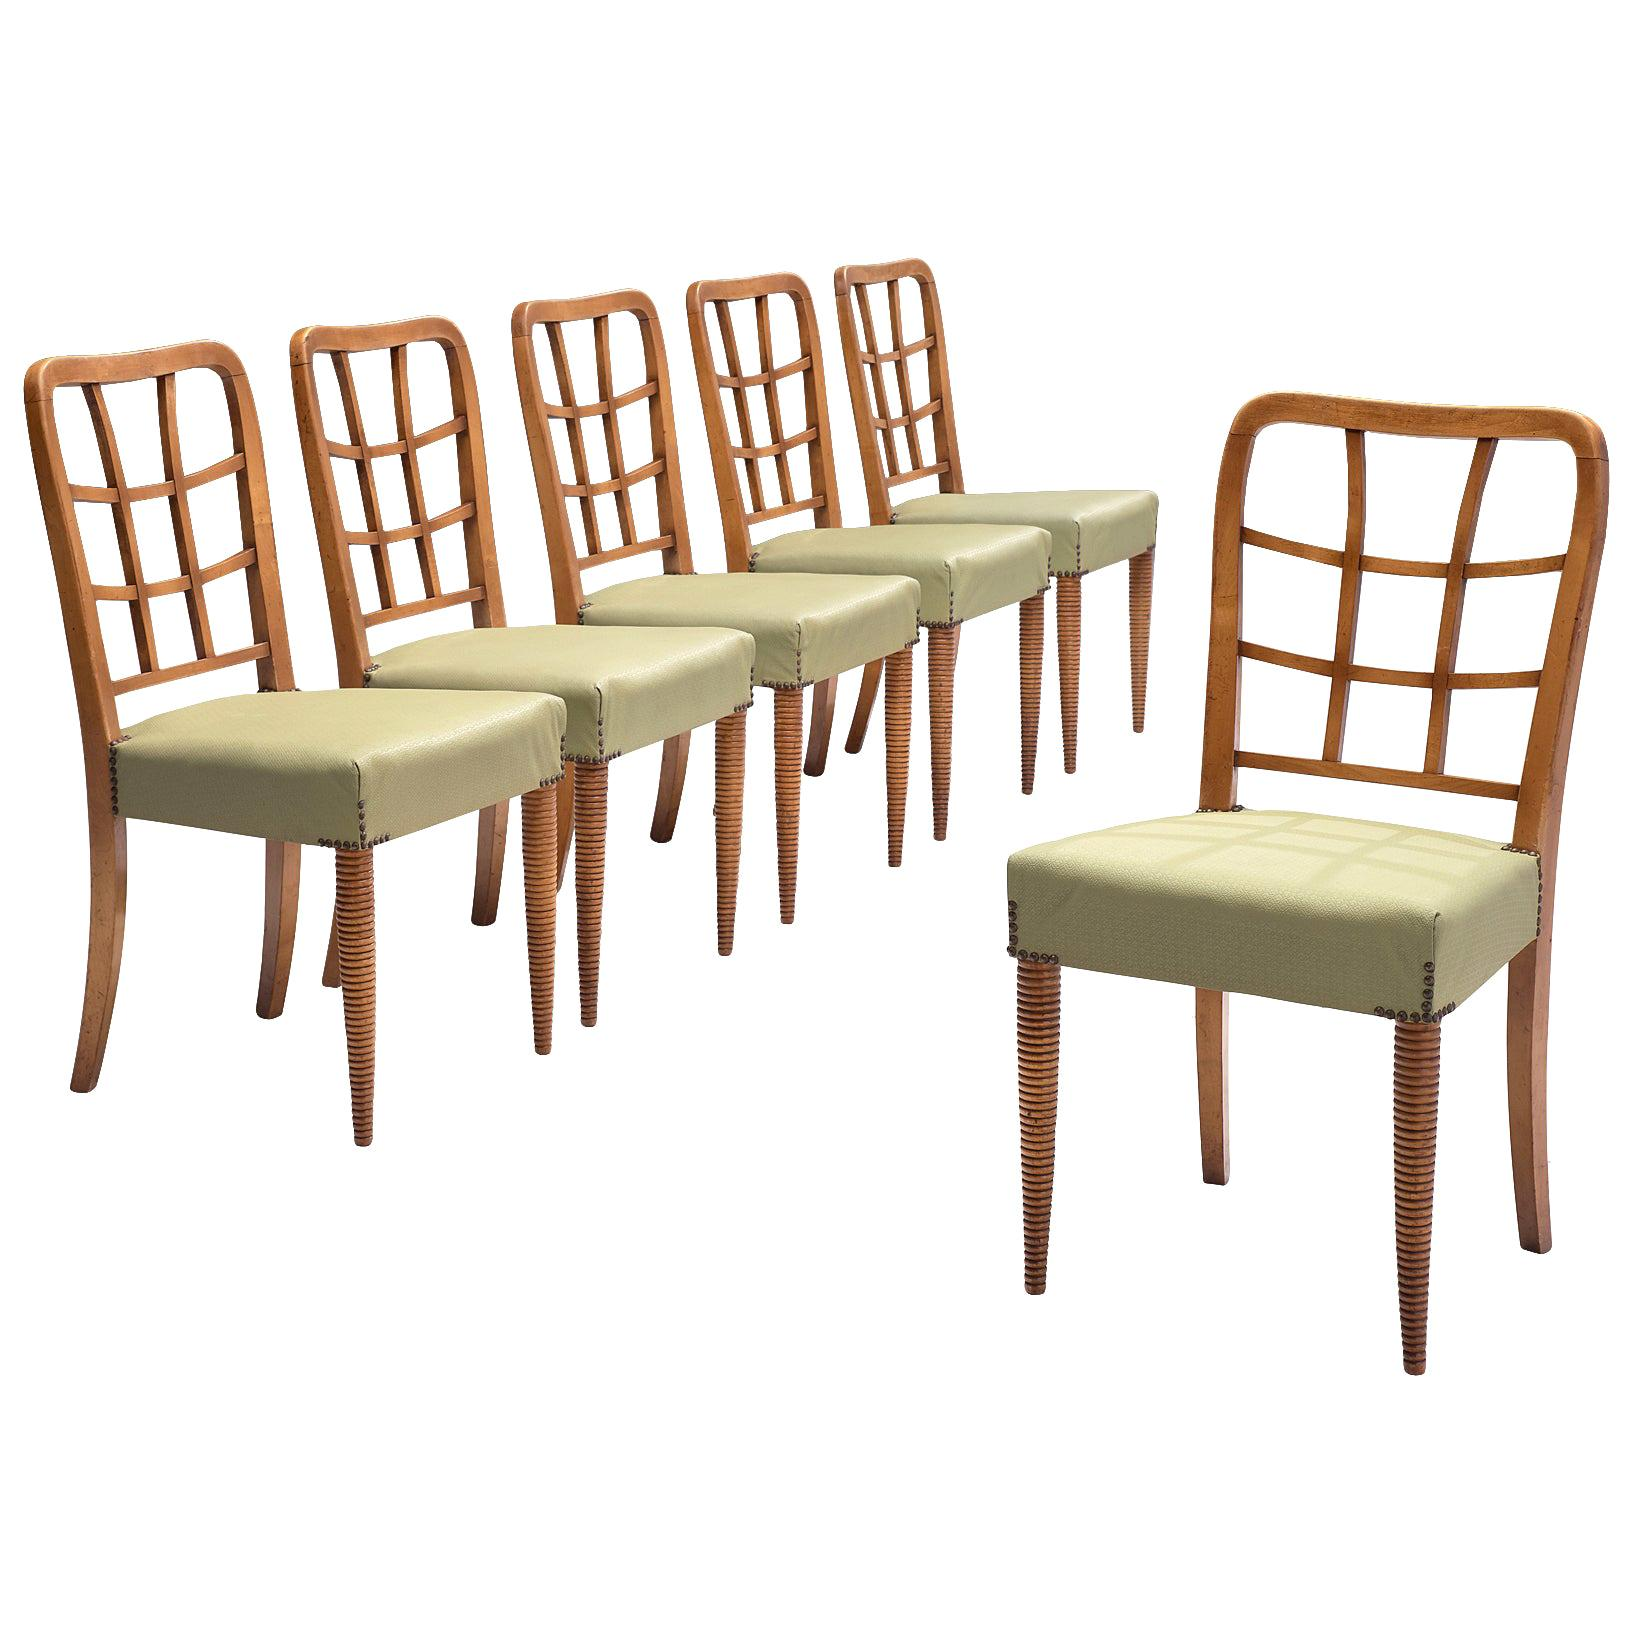 Set of Six Sculptural Italian Dining Chairs